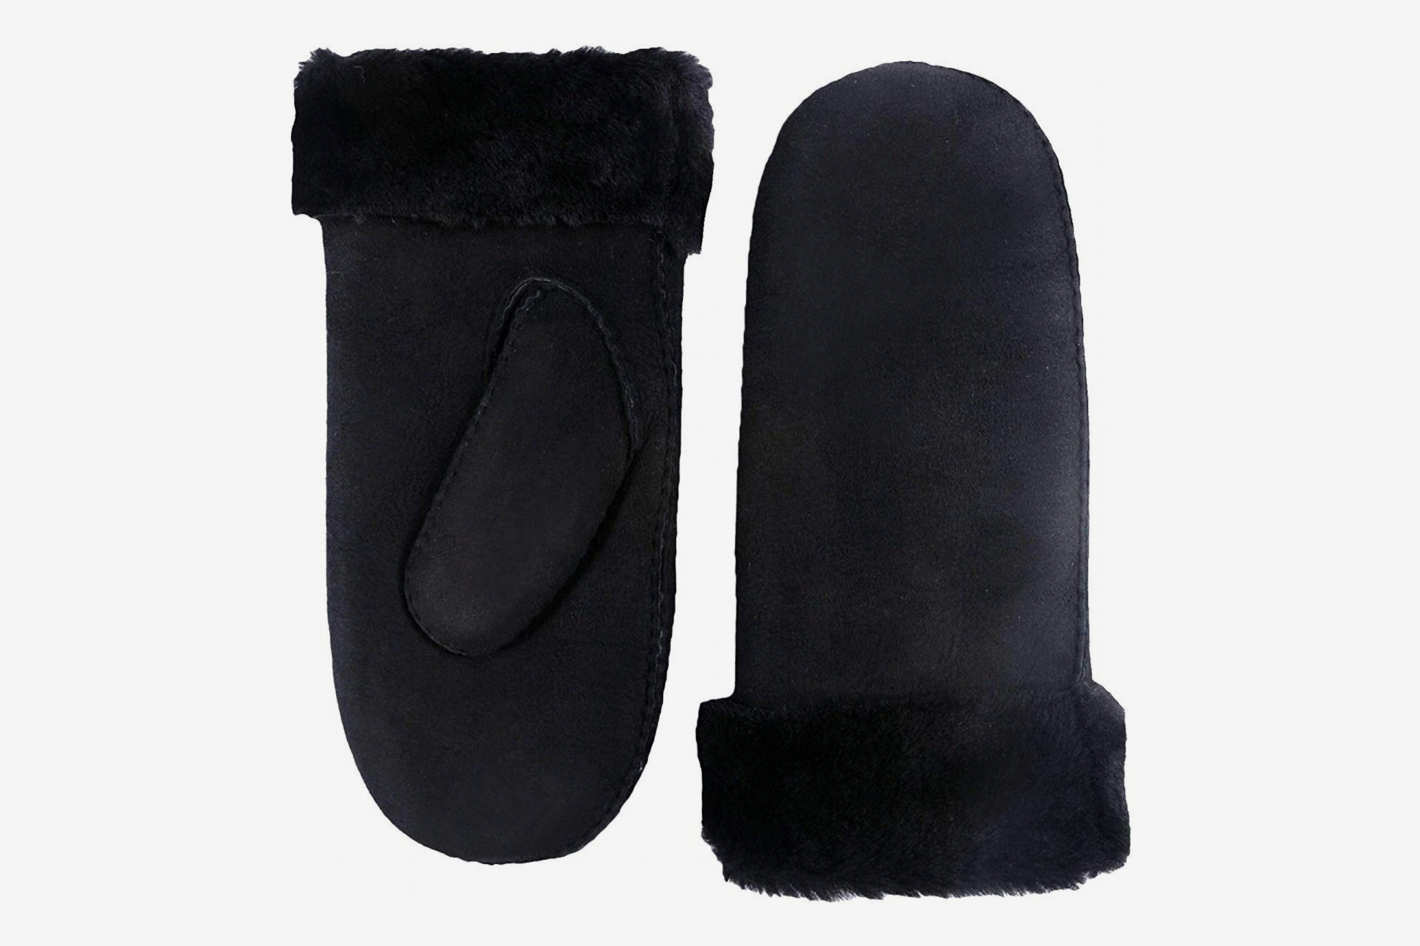 YISEVEN Women's Merino Rugged Shearling Winter Leather Mitten